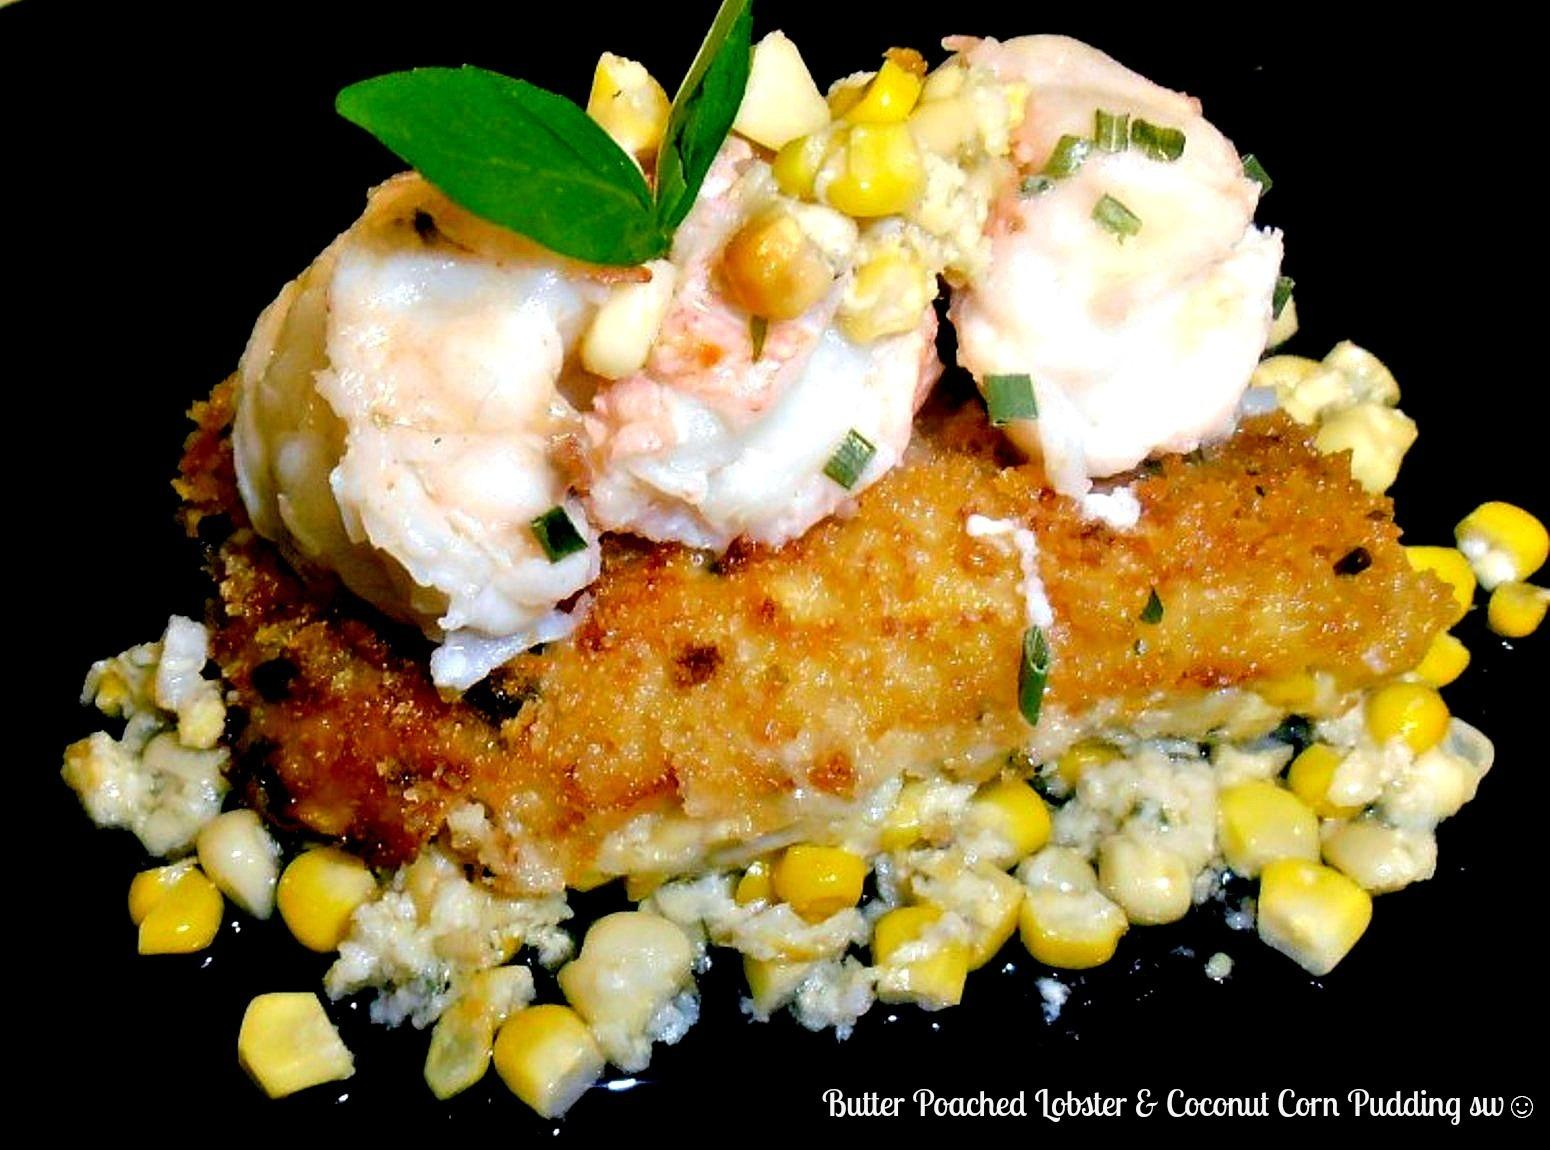 Butter Poached Lobster & Coconut Corn Pudding Recipe